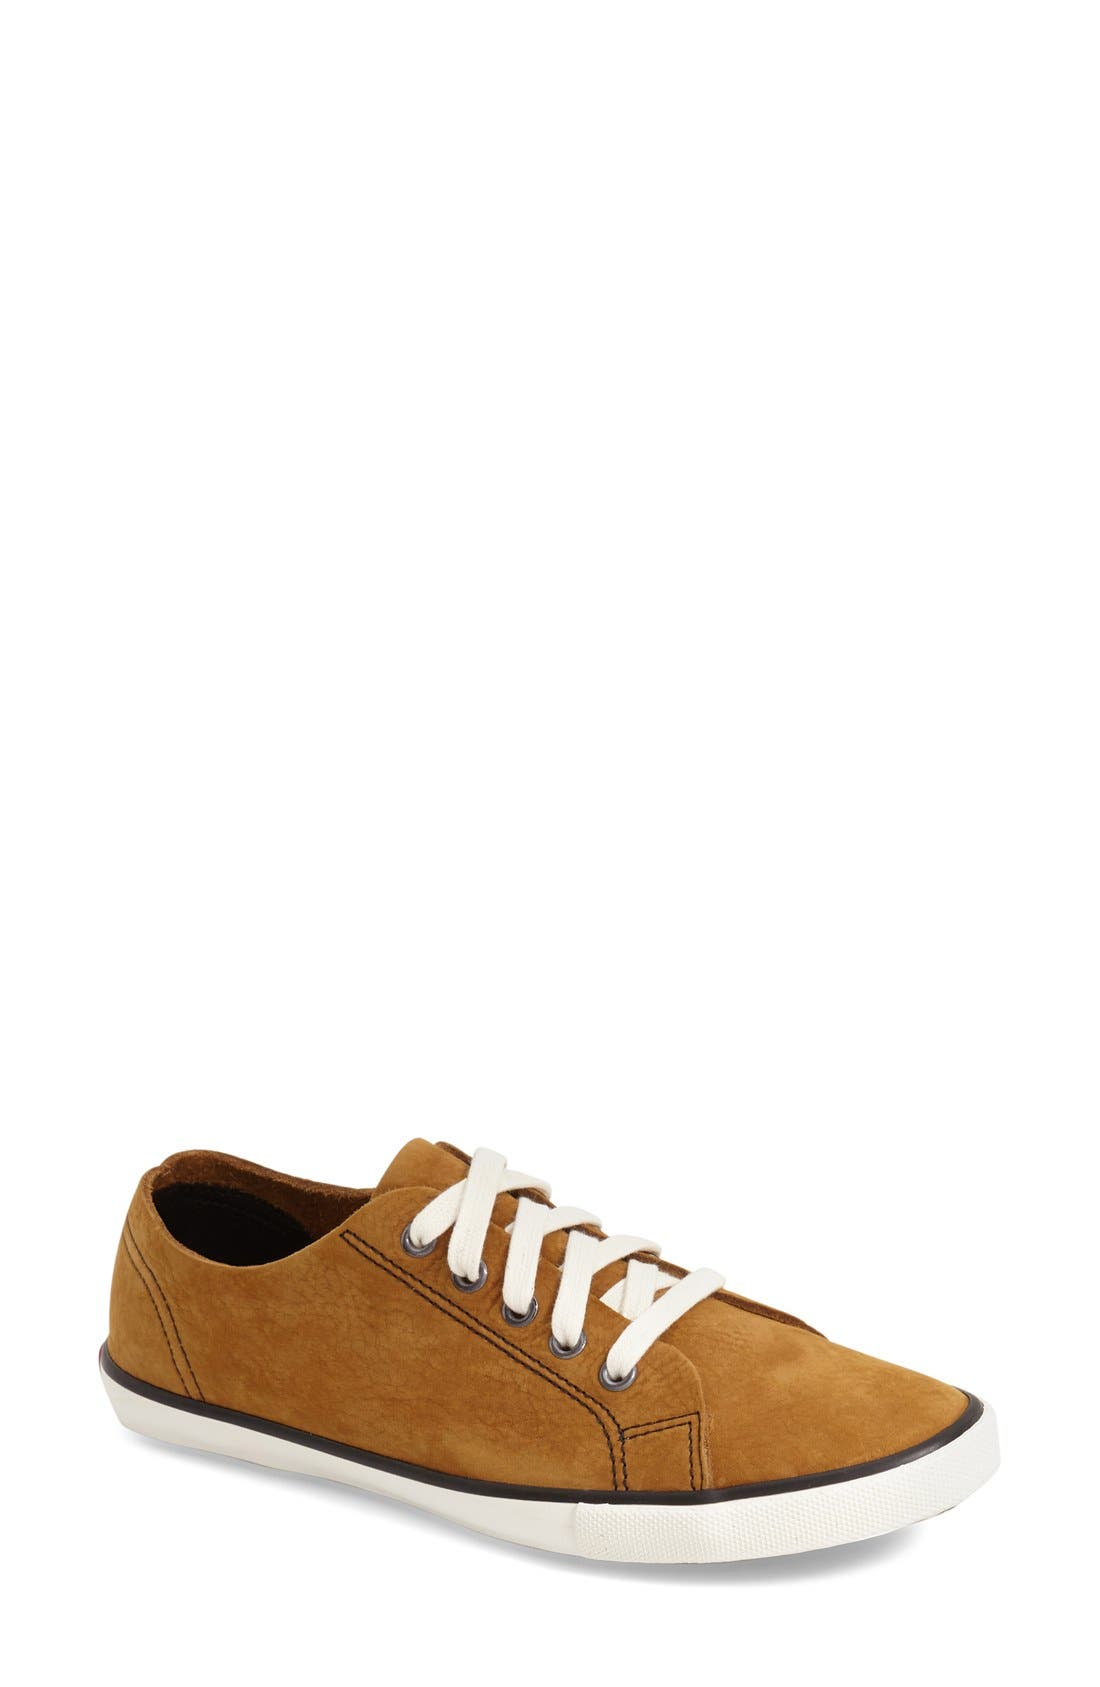 'Strand' Low-Top Sneaker,                             Main thumbnail 1, color,                             Toasty Nubuck